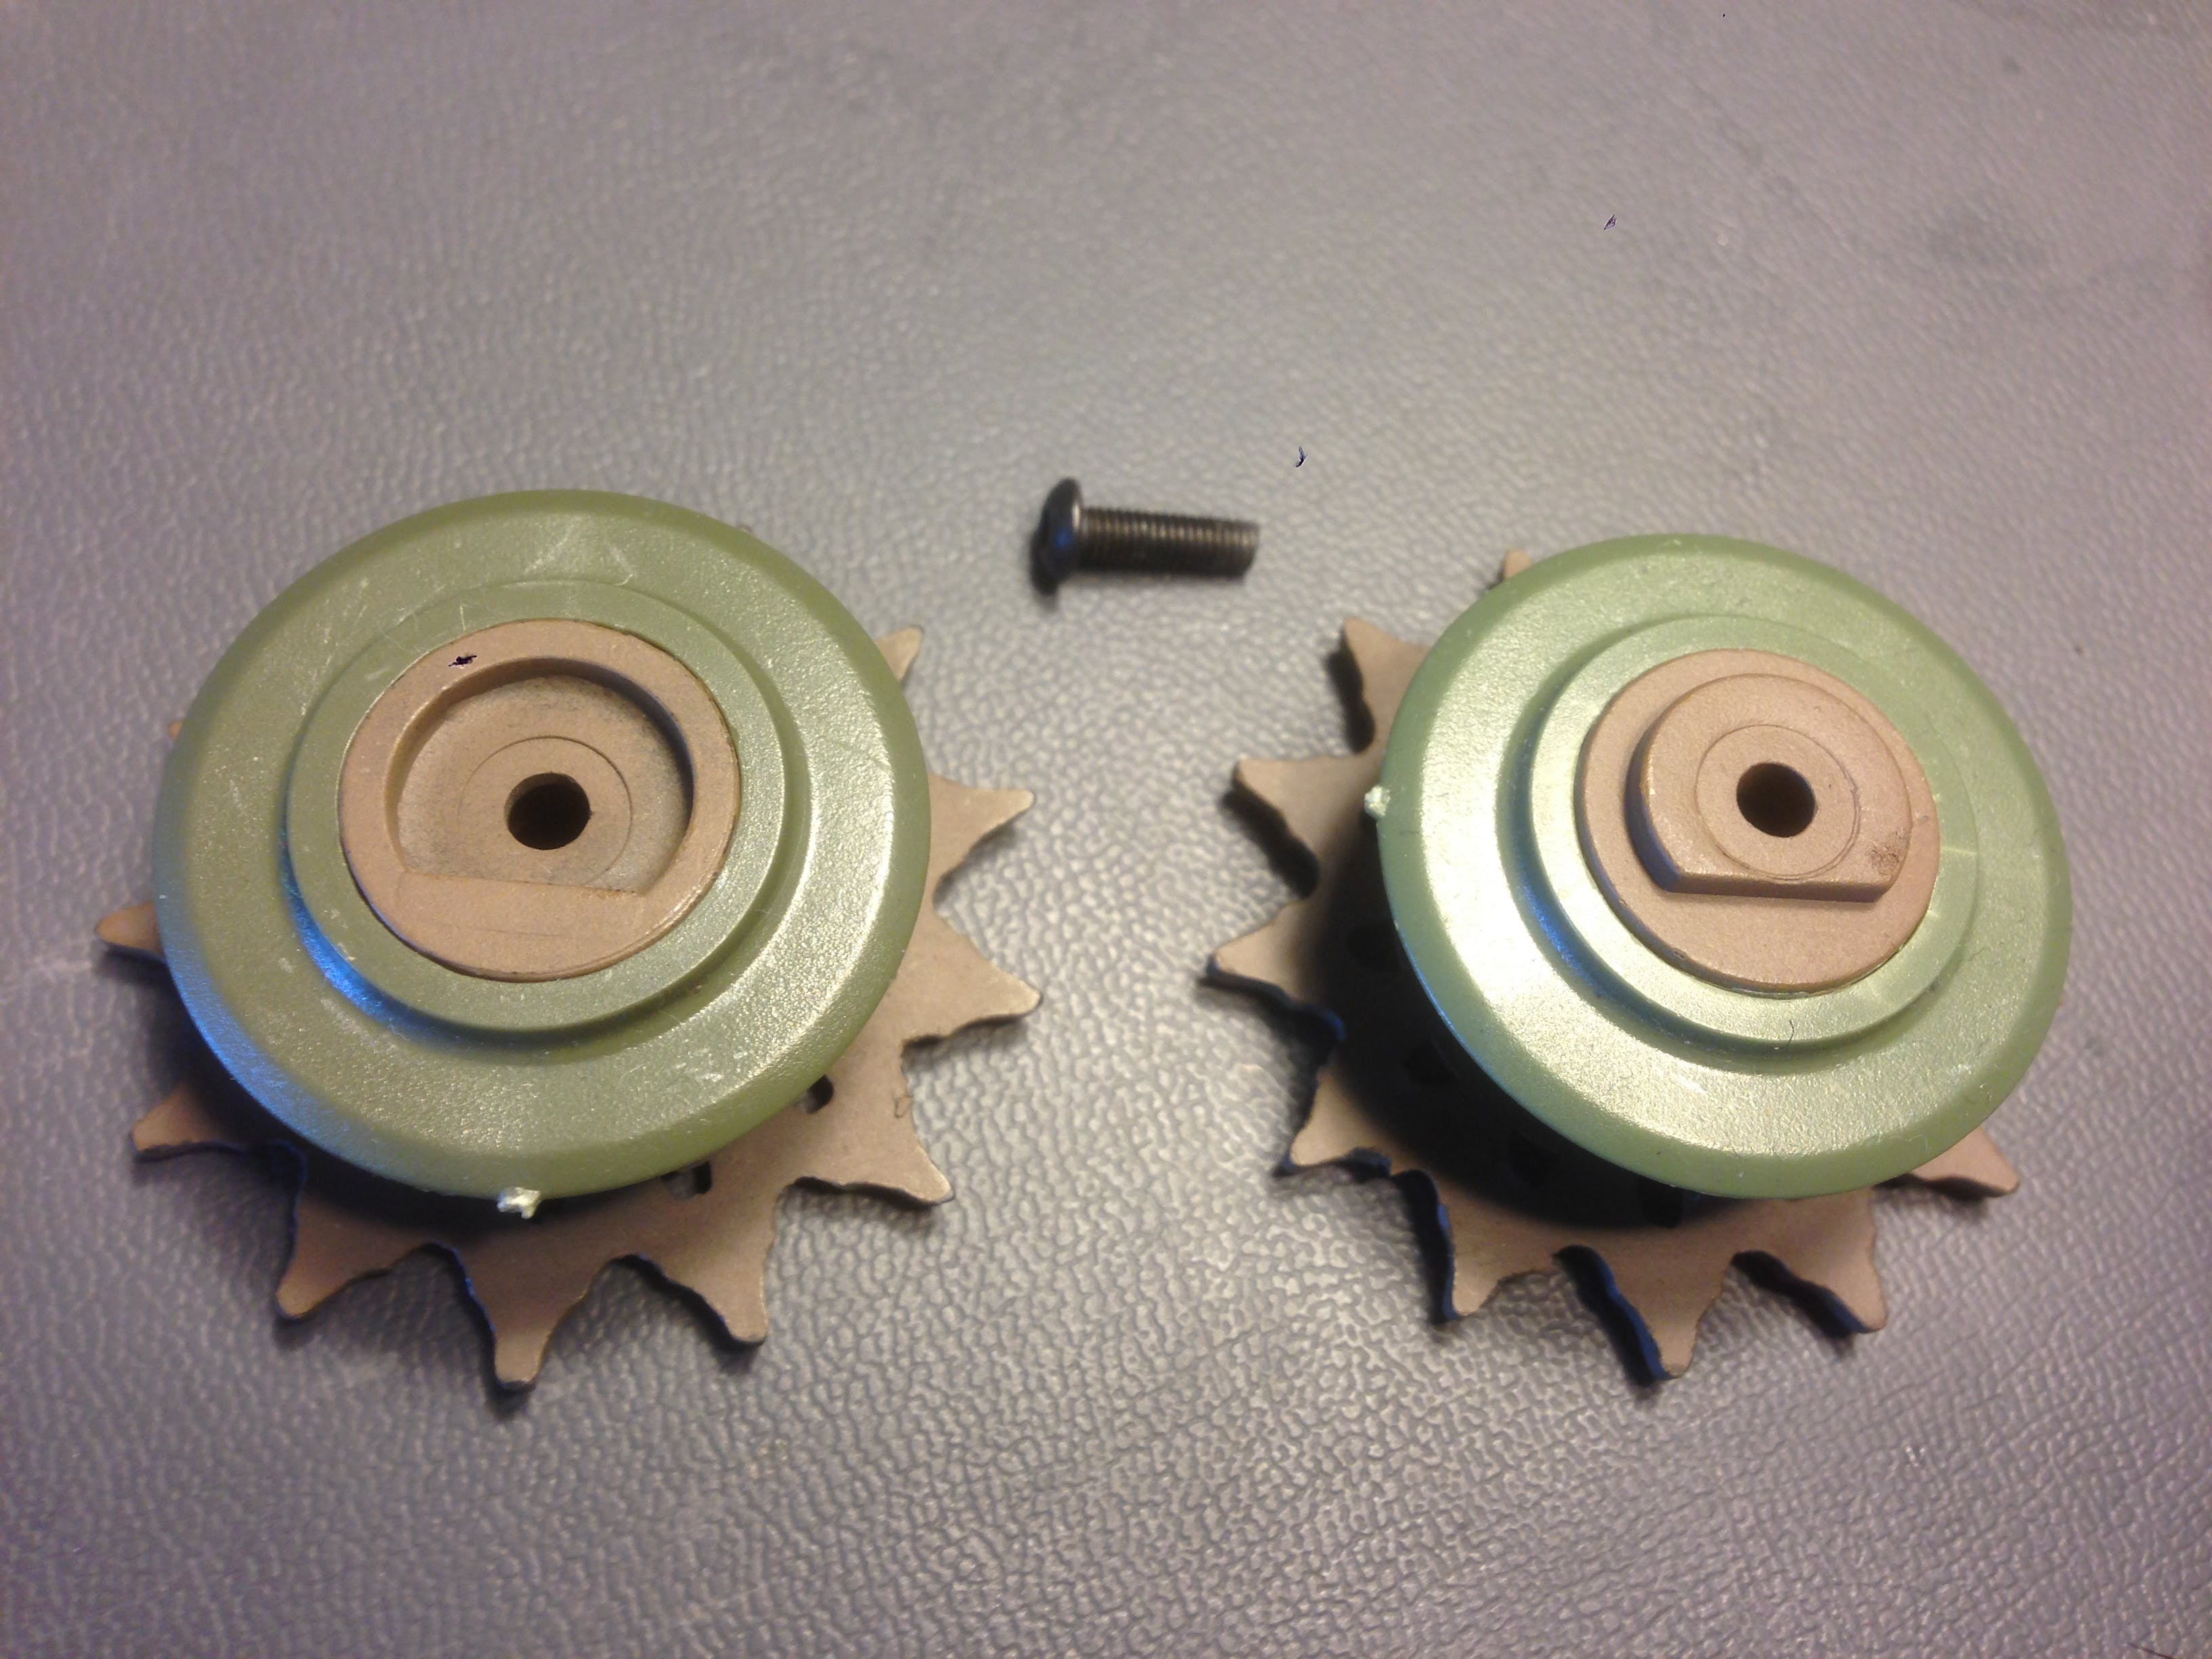 Sprocket presses together and is held in place with tongue and groove.